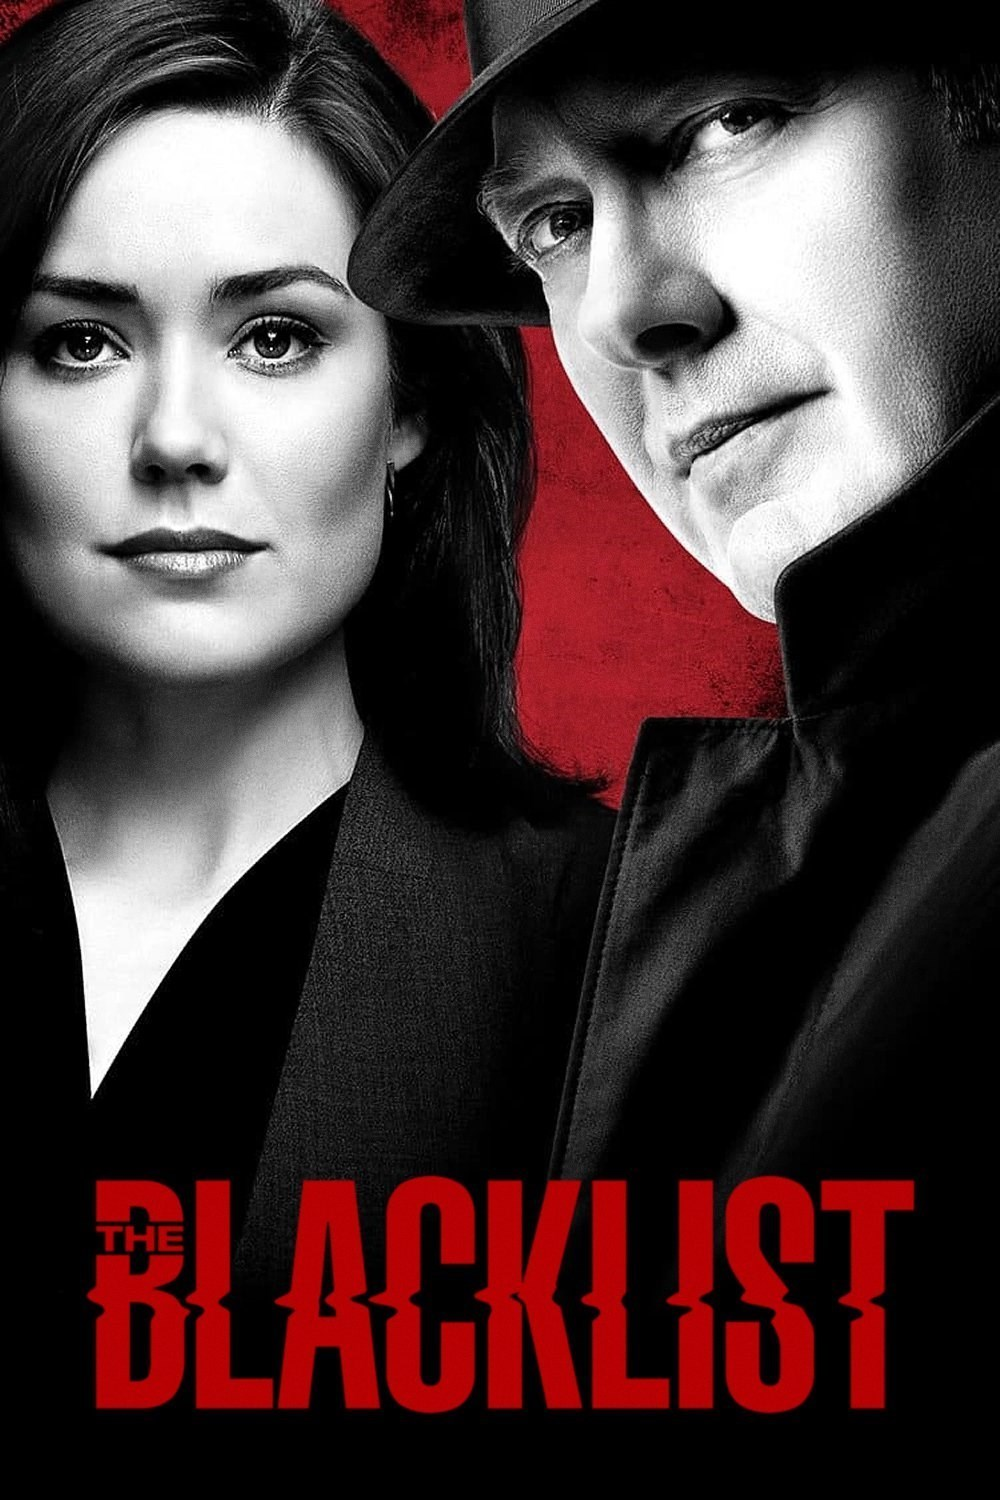 Subscene - Subtitles for The Blacklist - Sixth Season